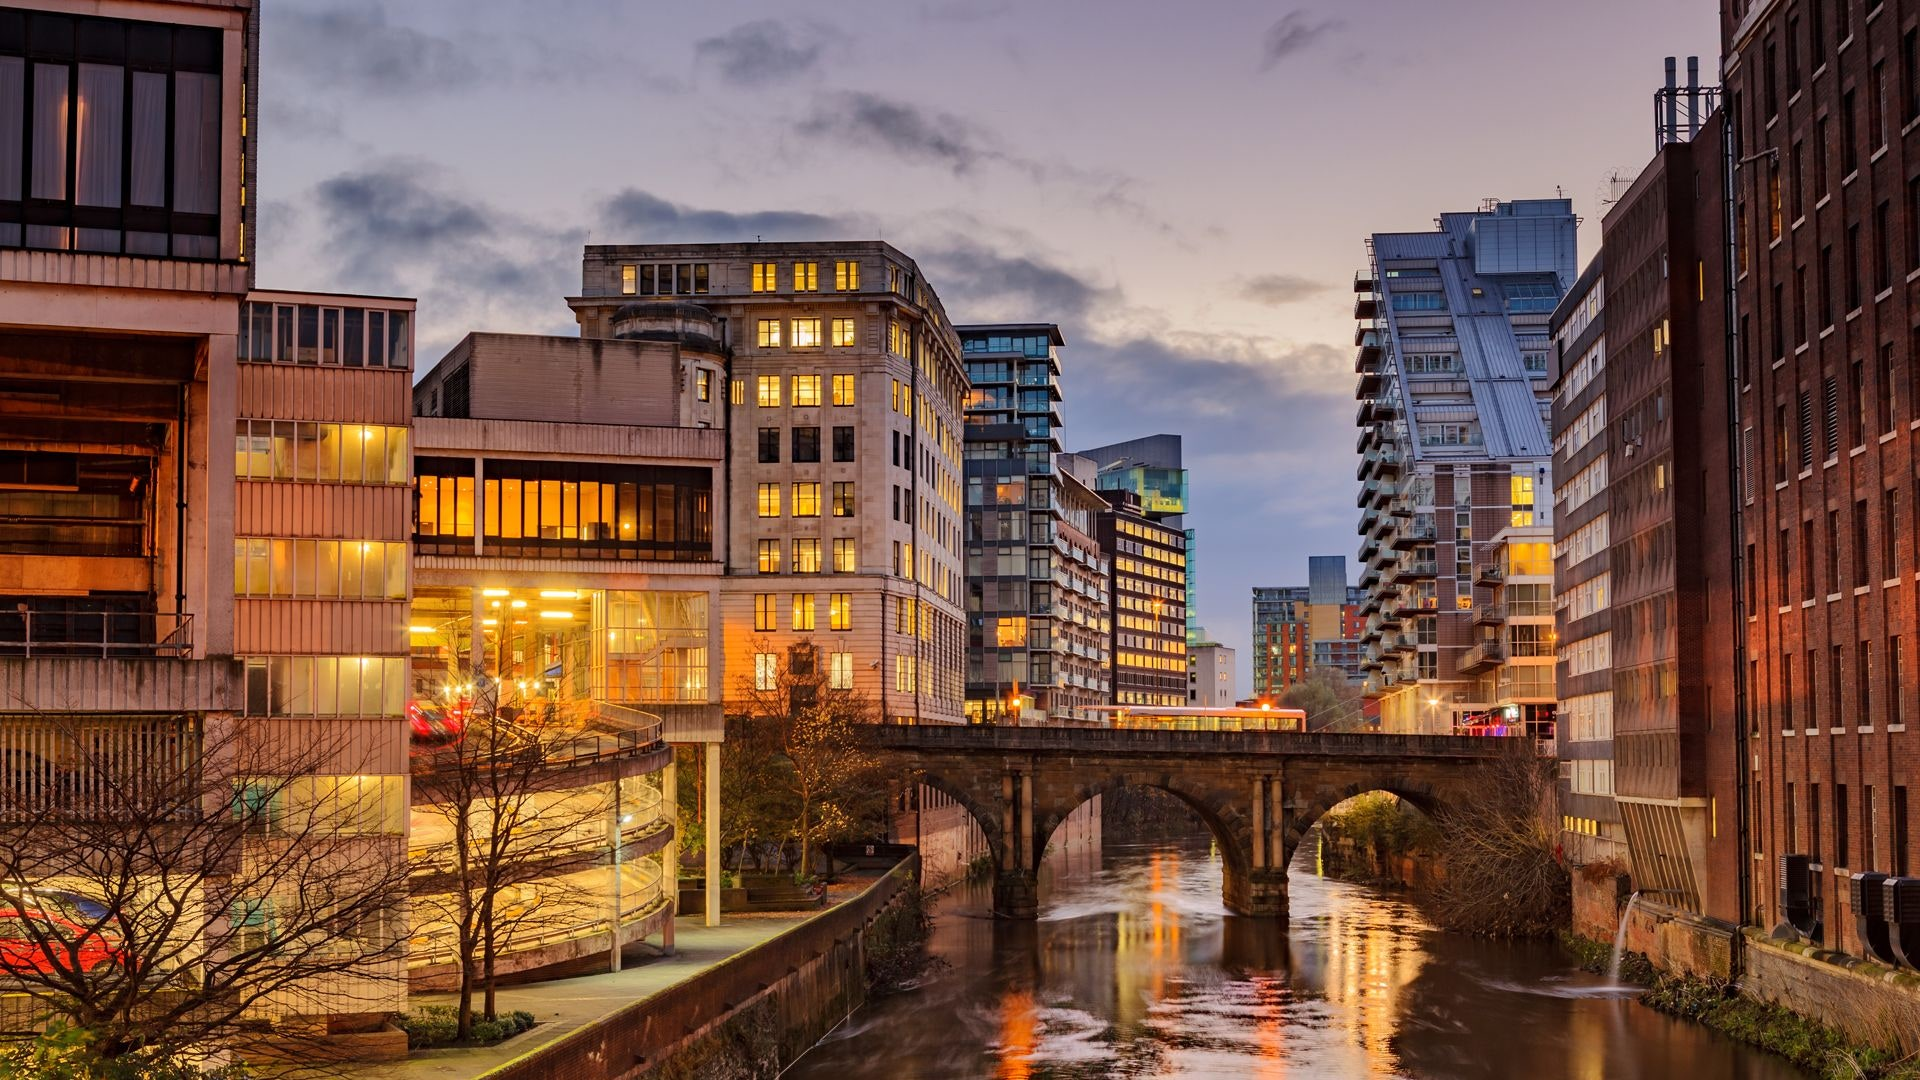 Cheap things to do in Manchester